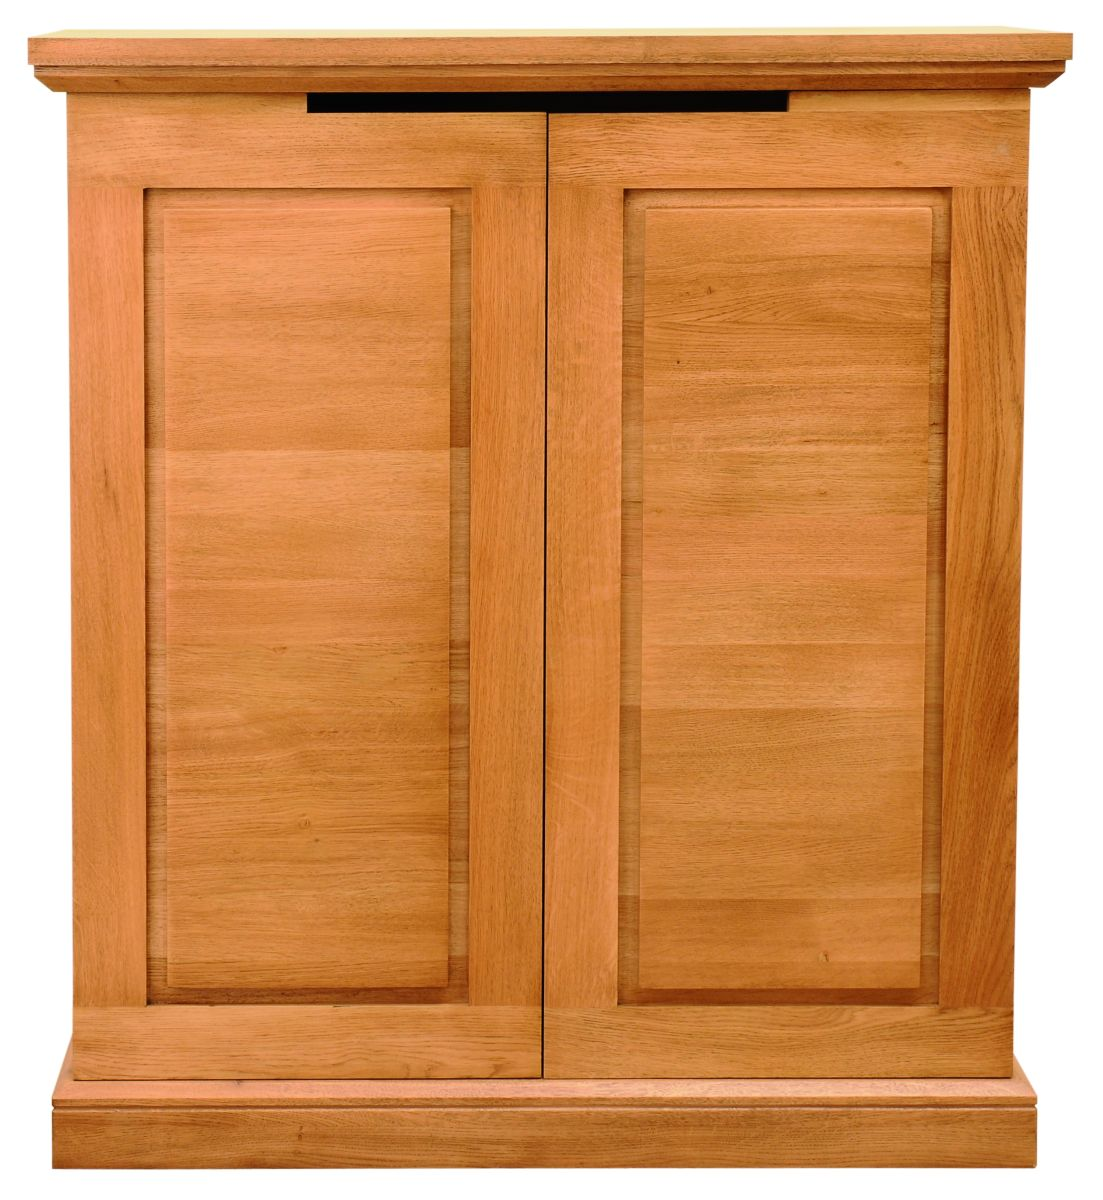 Solid Oak Storage Unit, 2 Doors